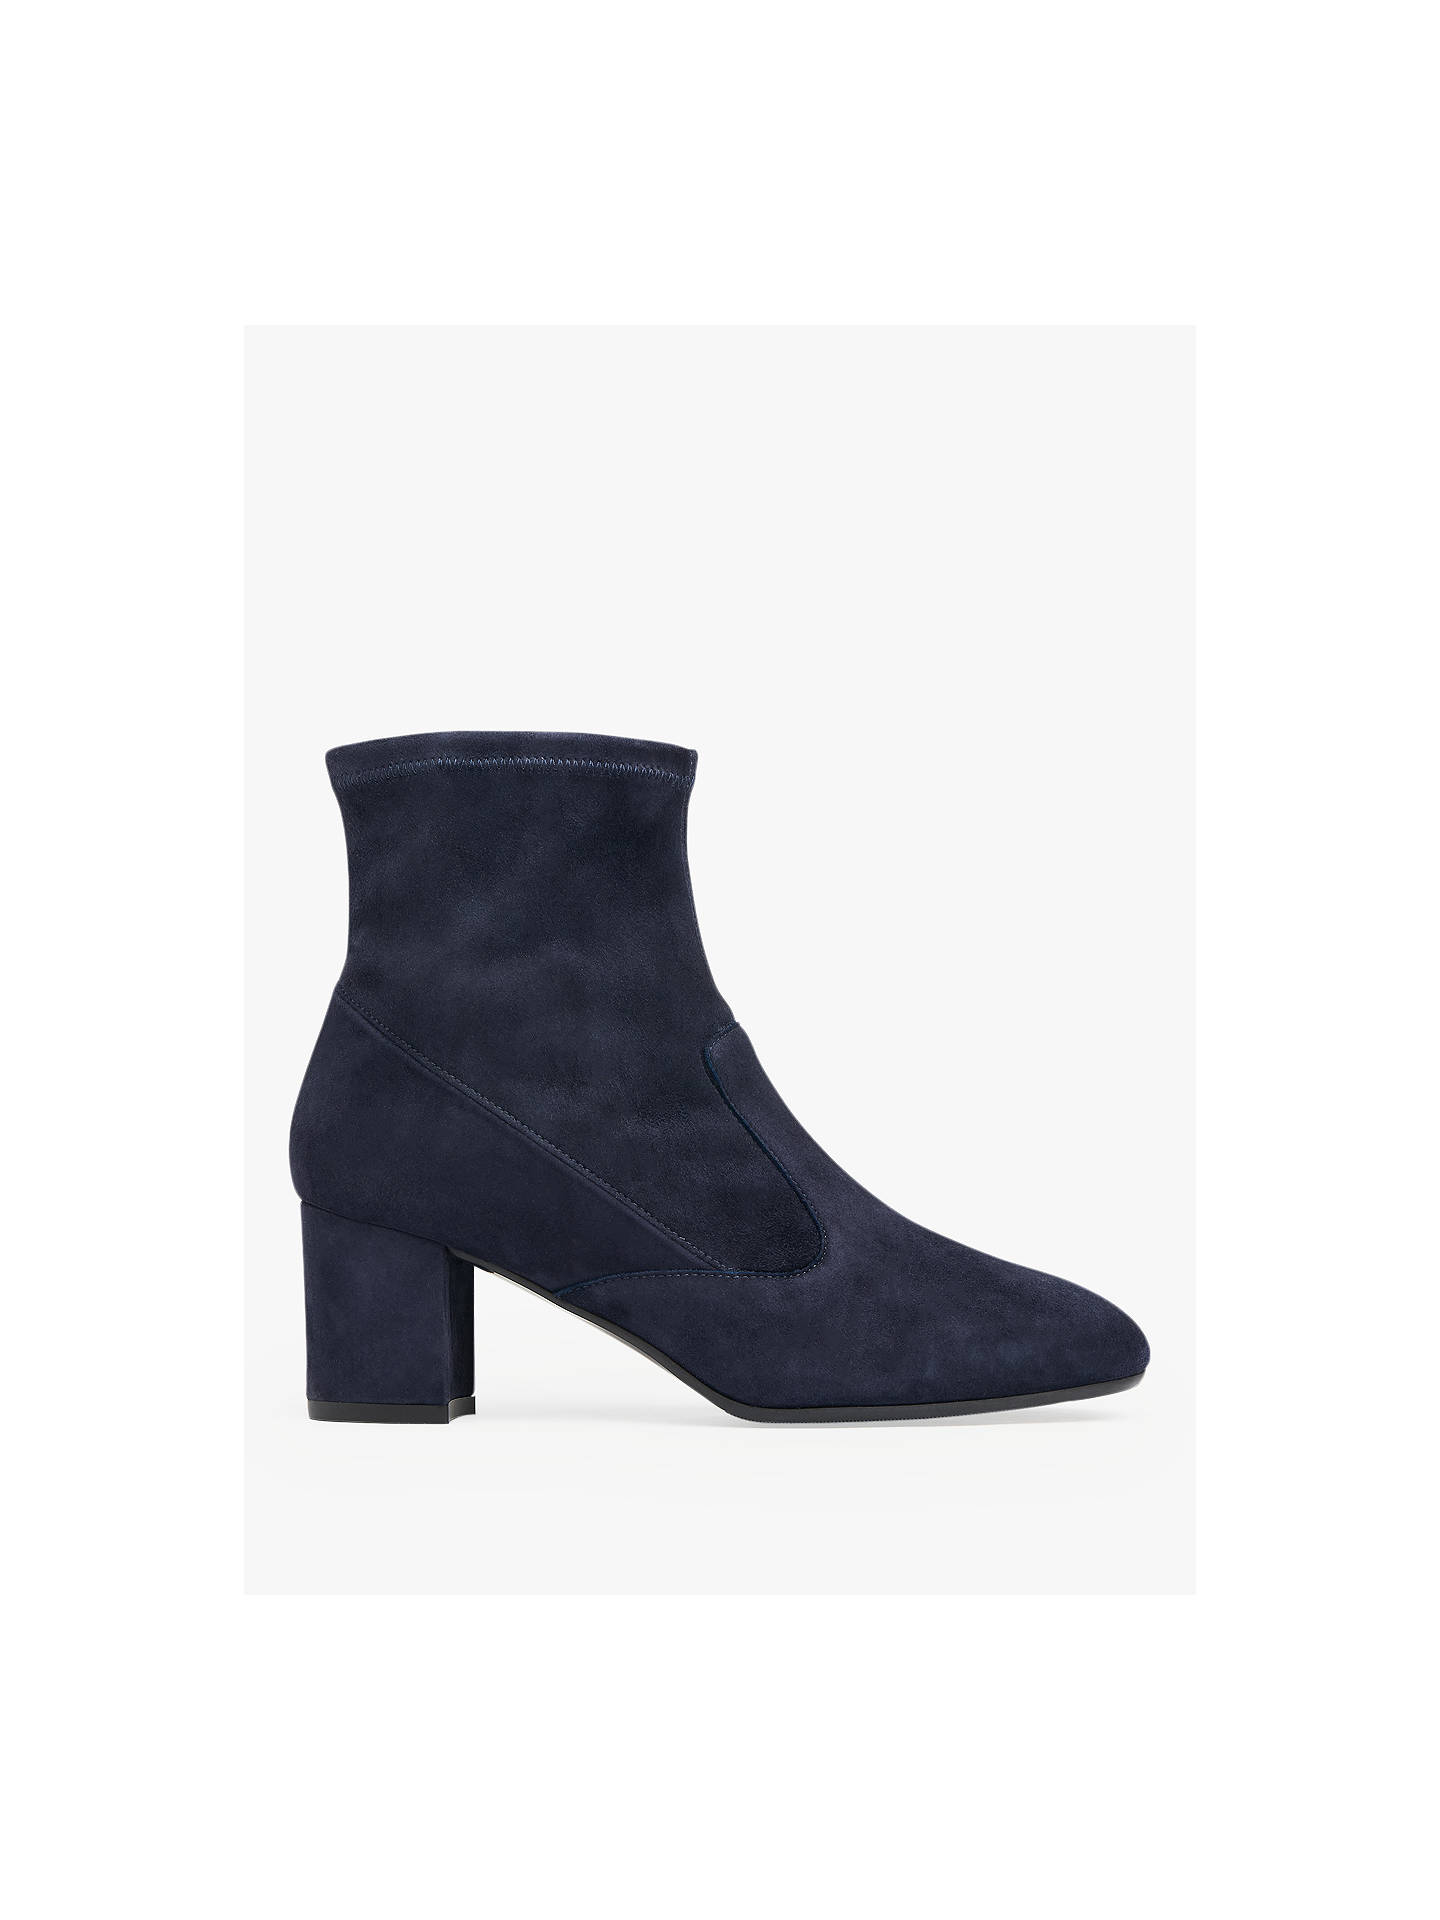 3f7647602 Buy L.K.Bennett Alexis Block Heel Sock Ankle Boots, Navy Leather, 5 Online  at ...